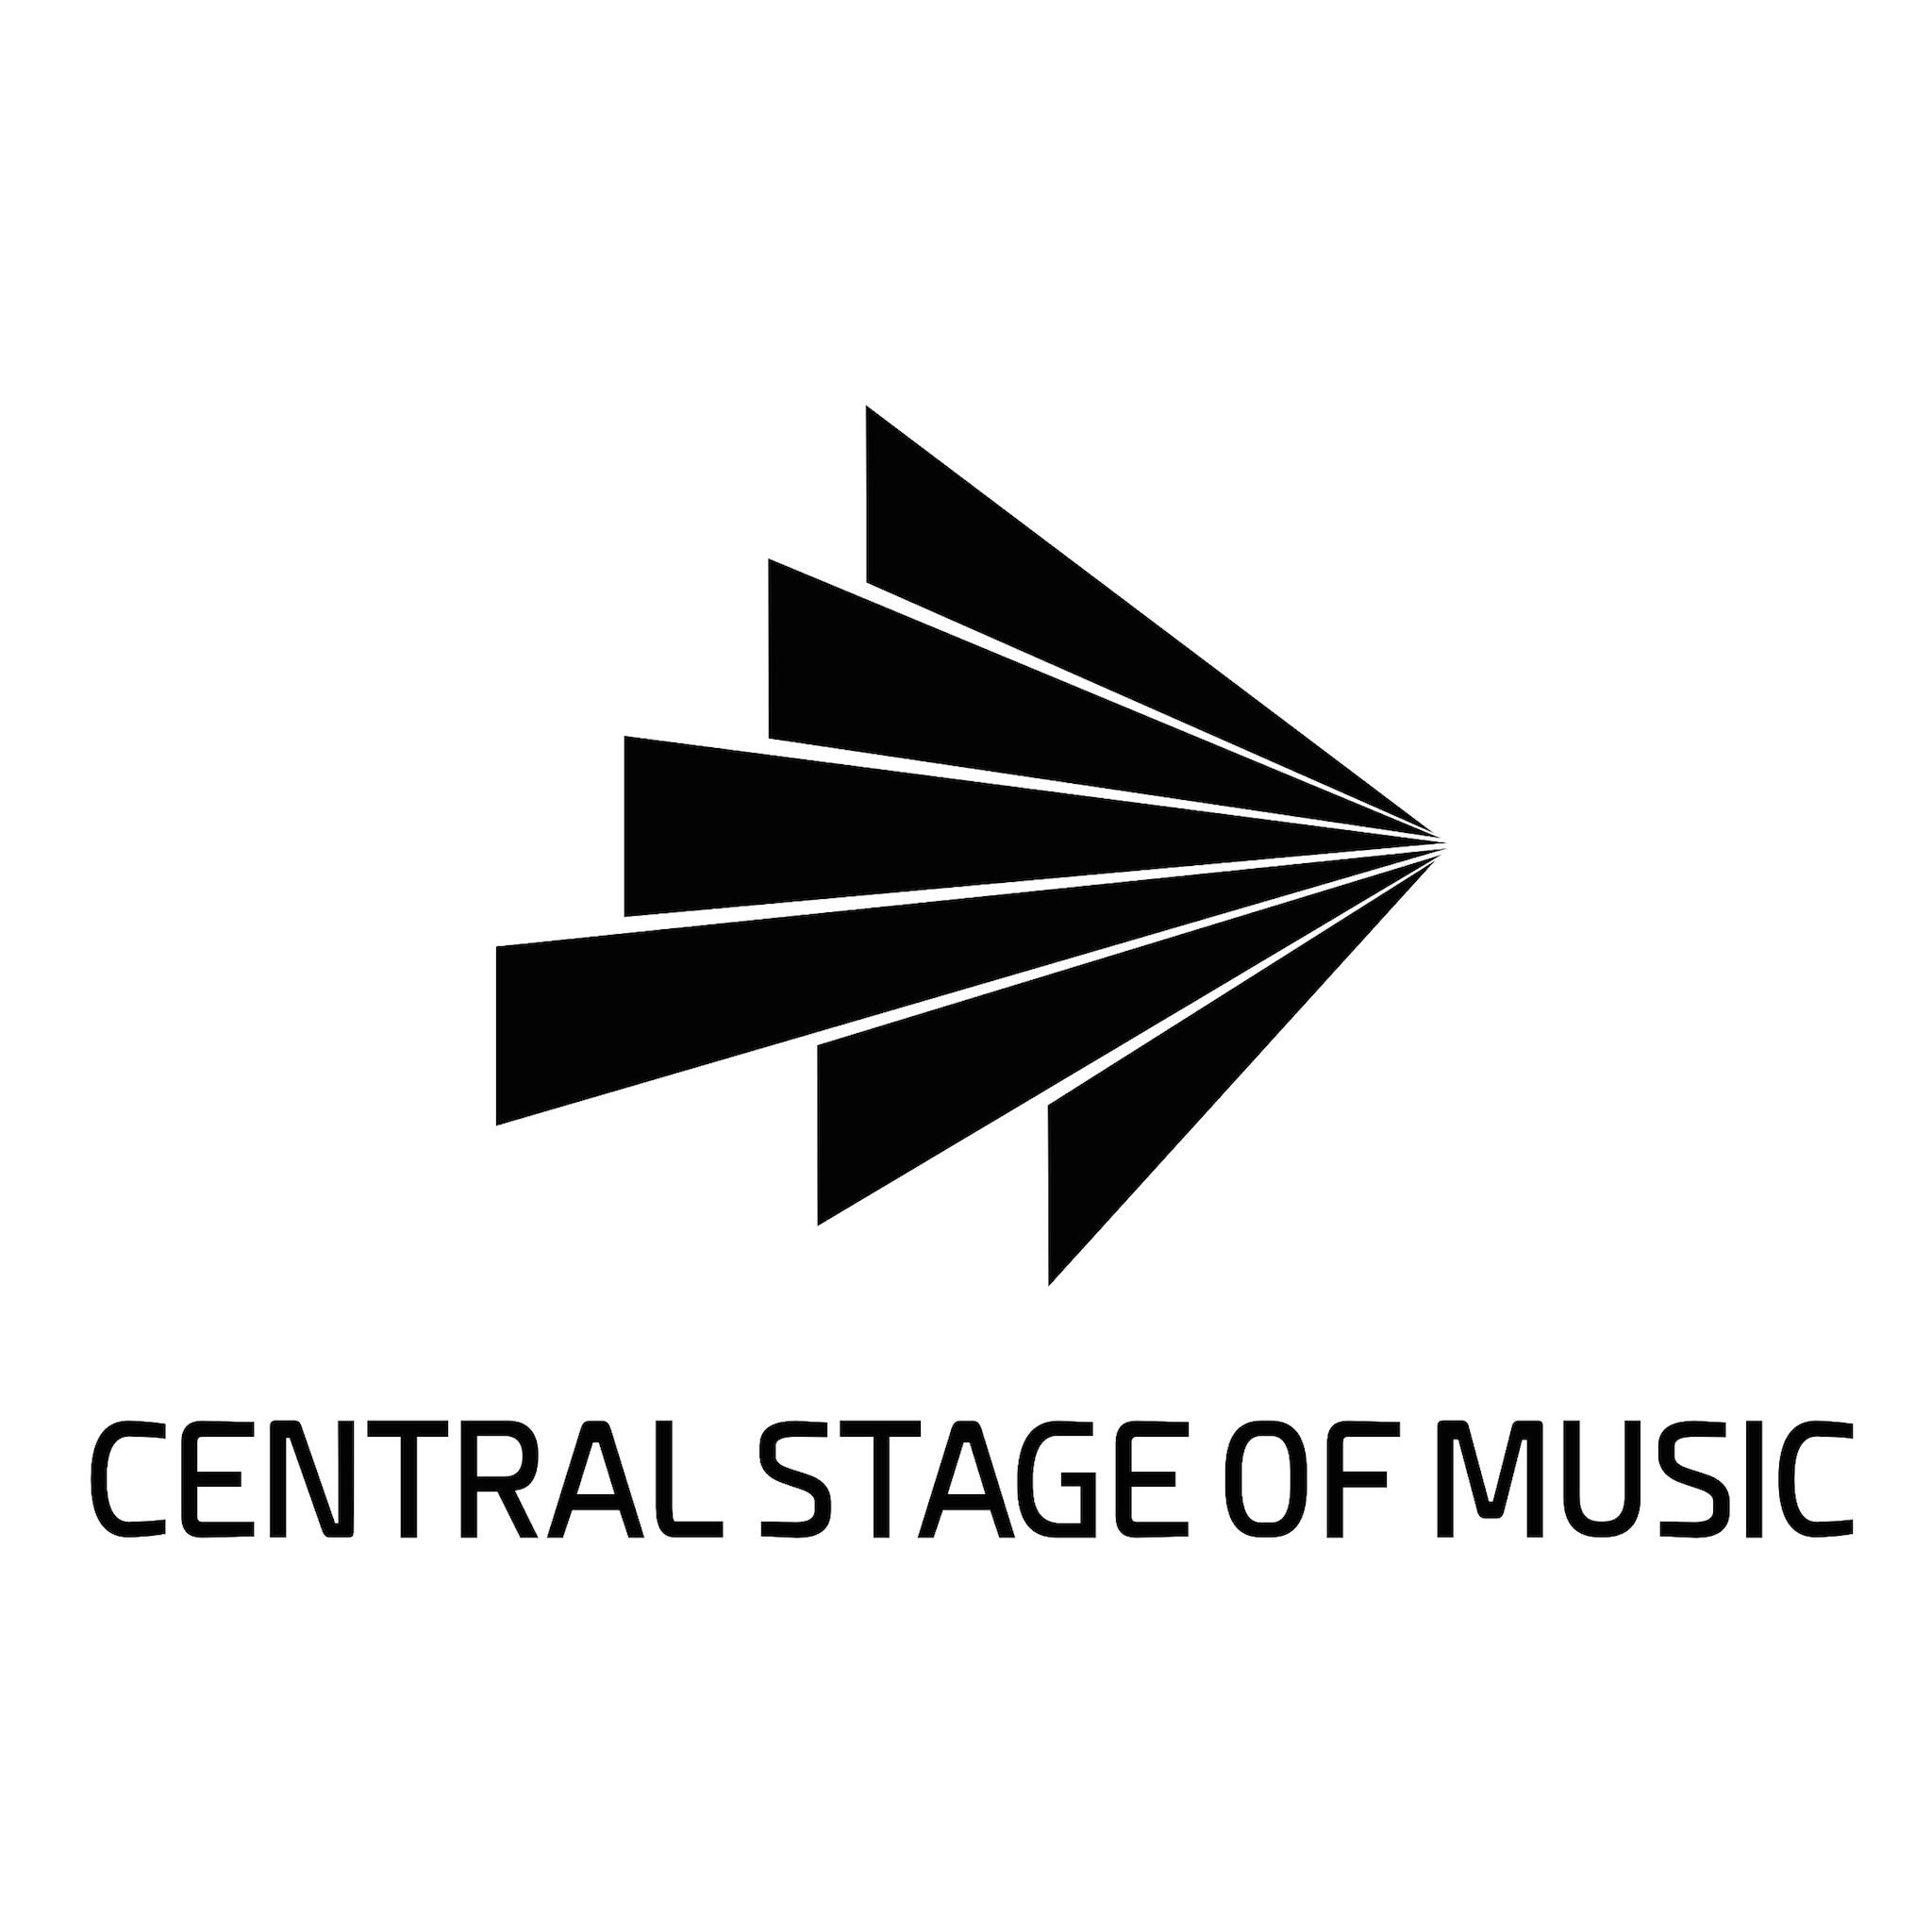 Central Stage Of Music